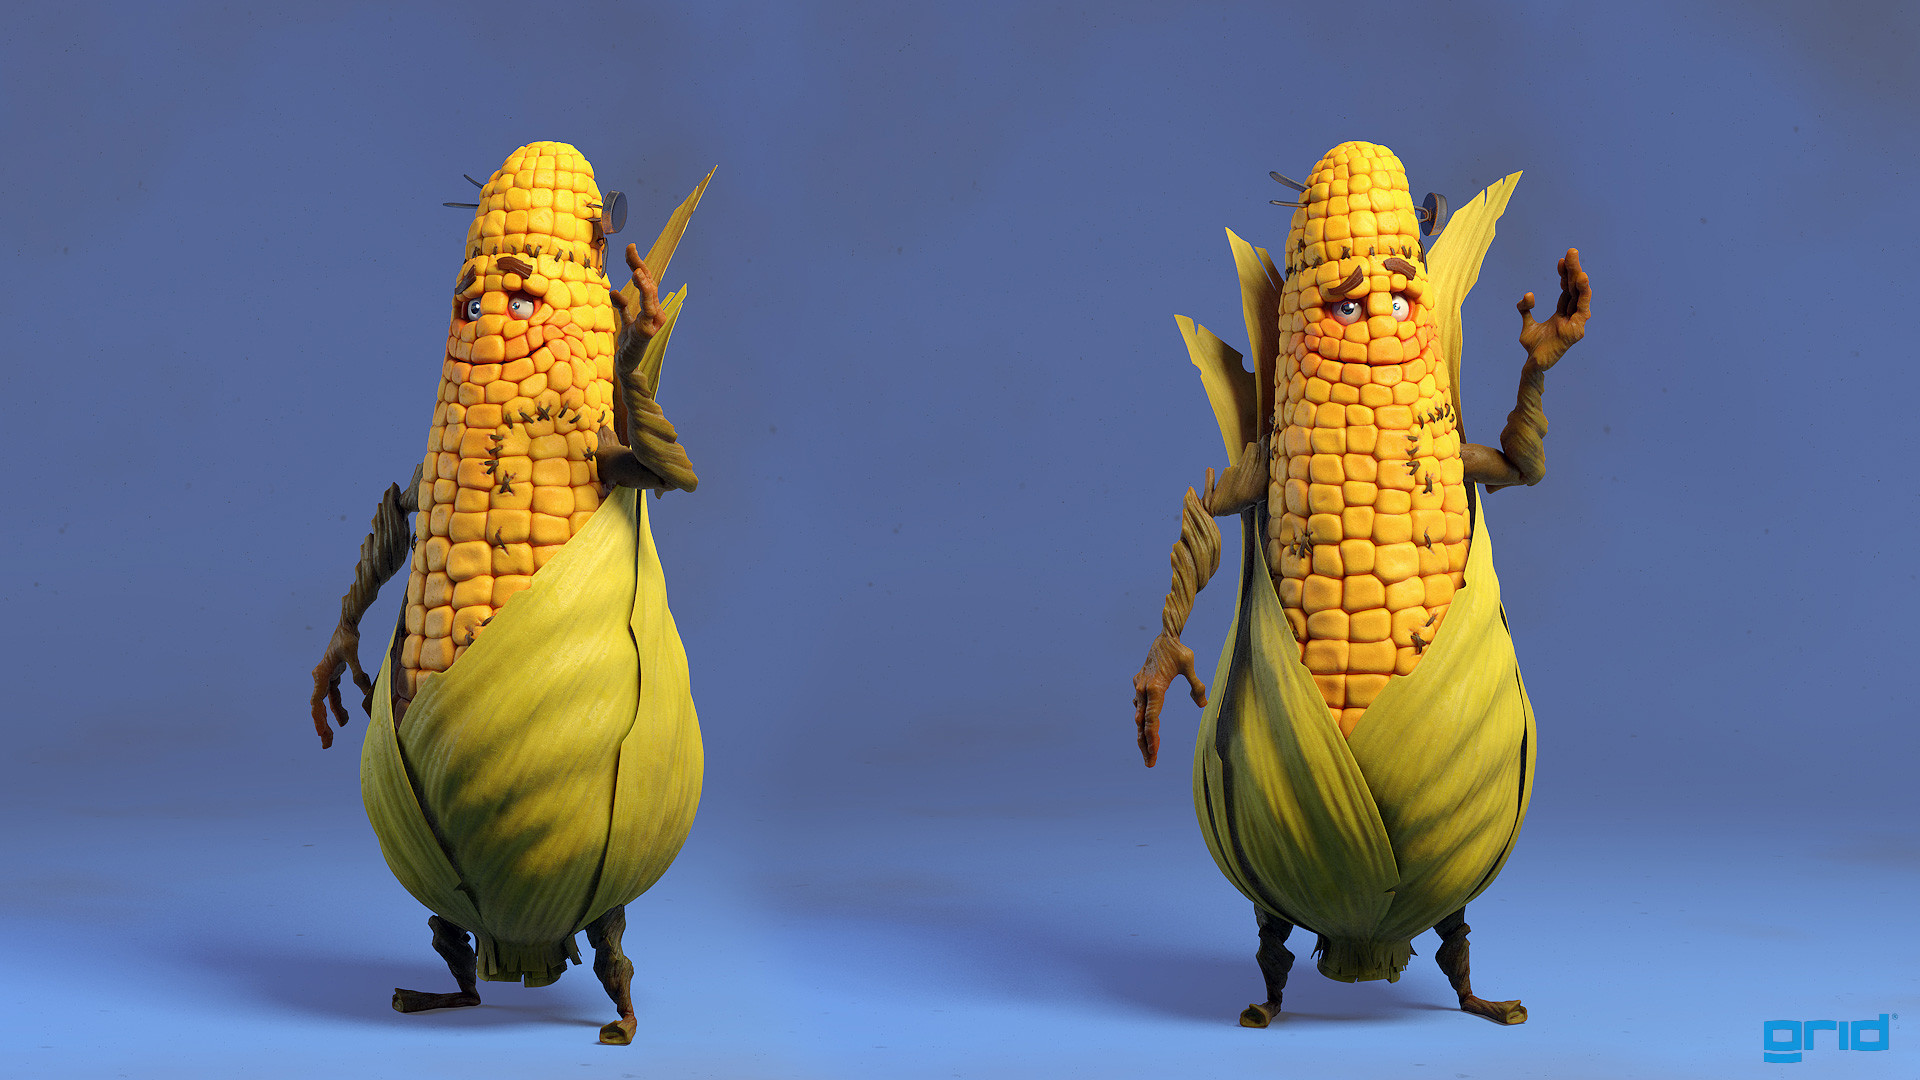 Olivier couston corn